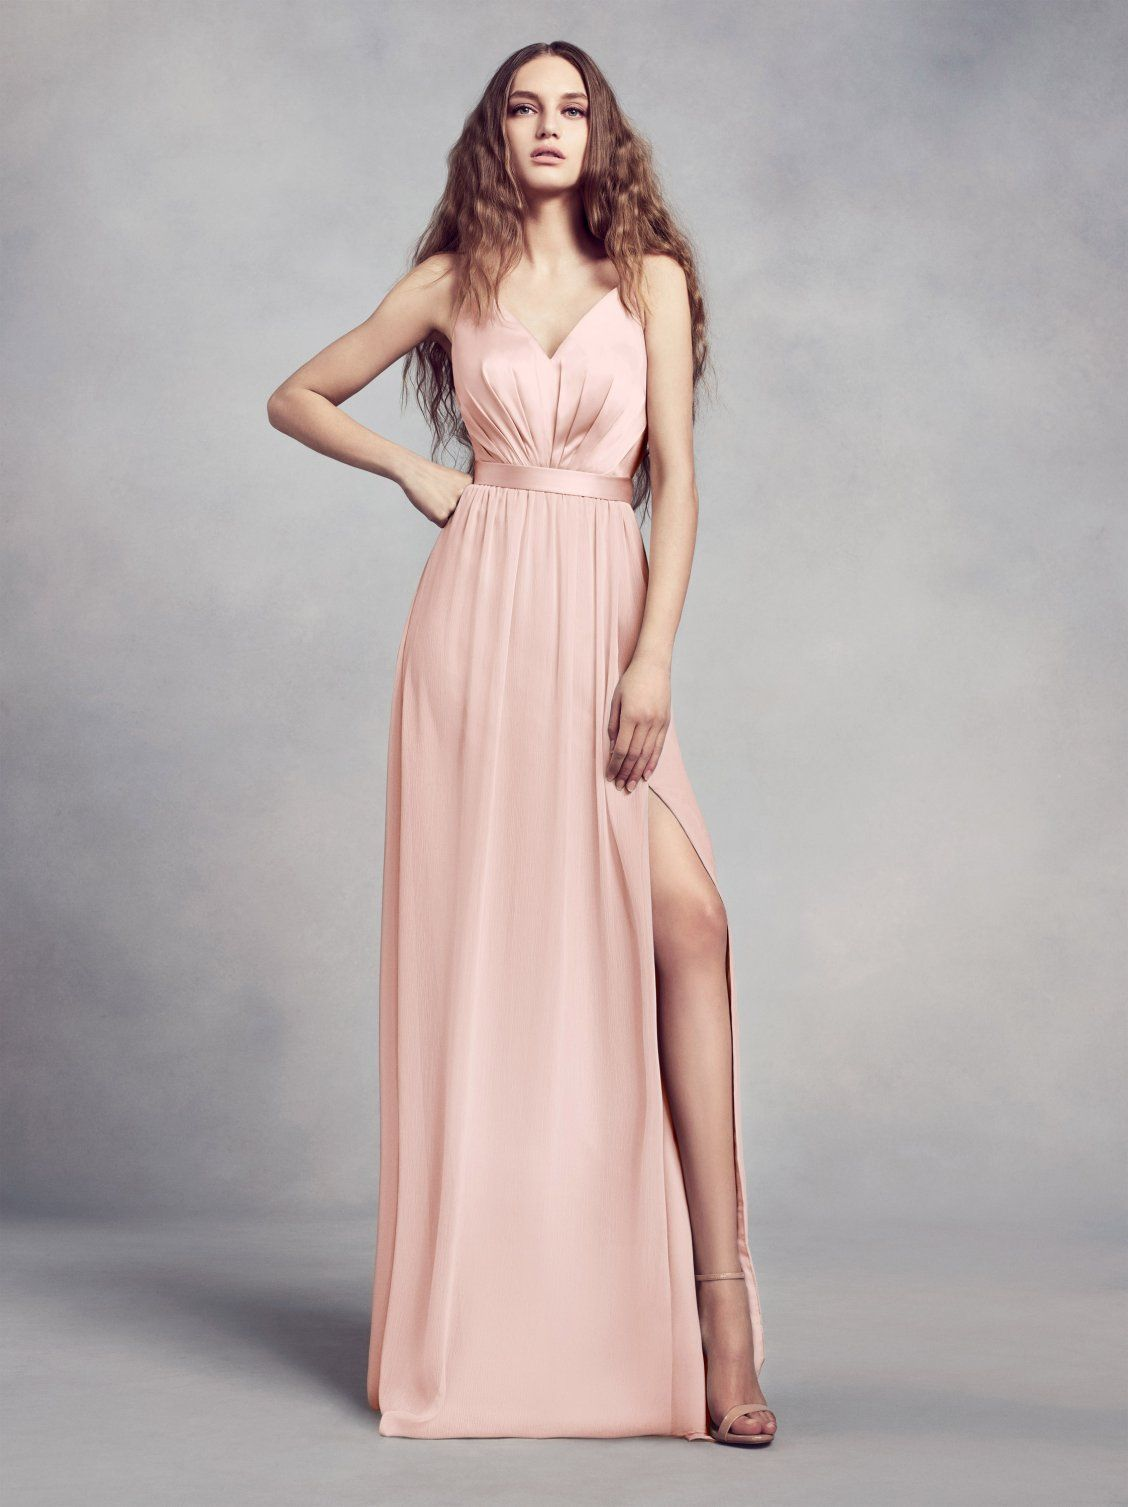 White By Vera Bridesmaid Dress Style Vw360345 A Charmeuse And Chiffon V Neck In Blush Available At David S Bridal